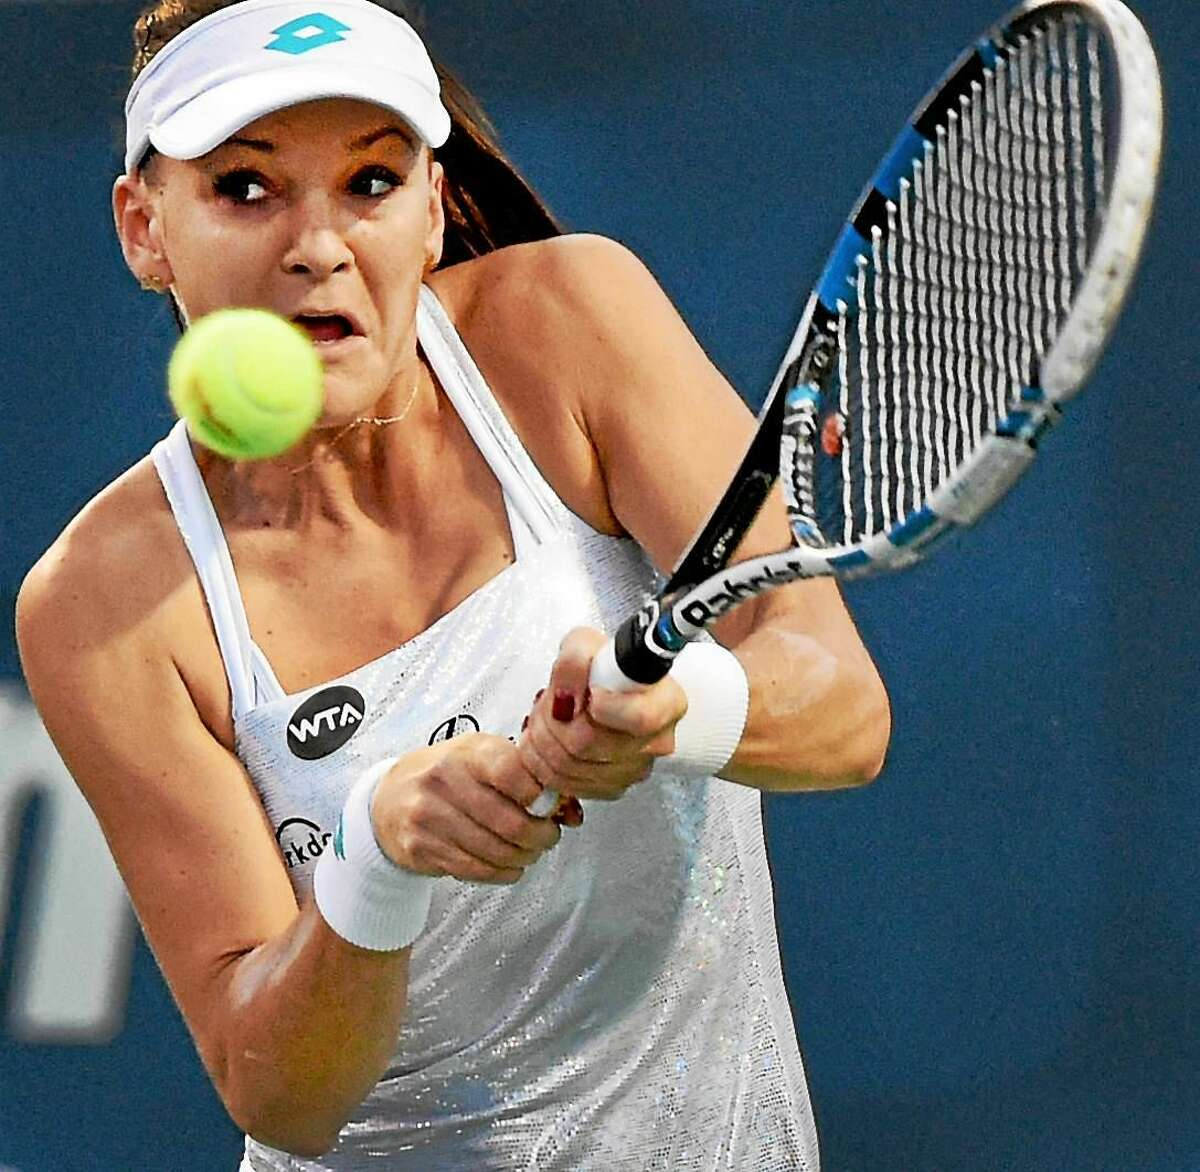 (Peter Hvizdak - New Haven Register) Agnieszka Radwanska of Poland plays a first set volley against CoCo Vandeweghe of the U.S.A.during a Connecticut Open tennis Stadium court match in New Haven Monday evening August 24, 2015.